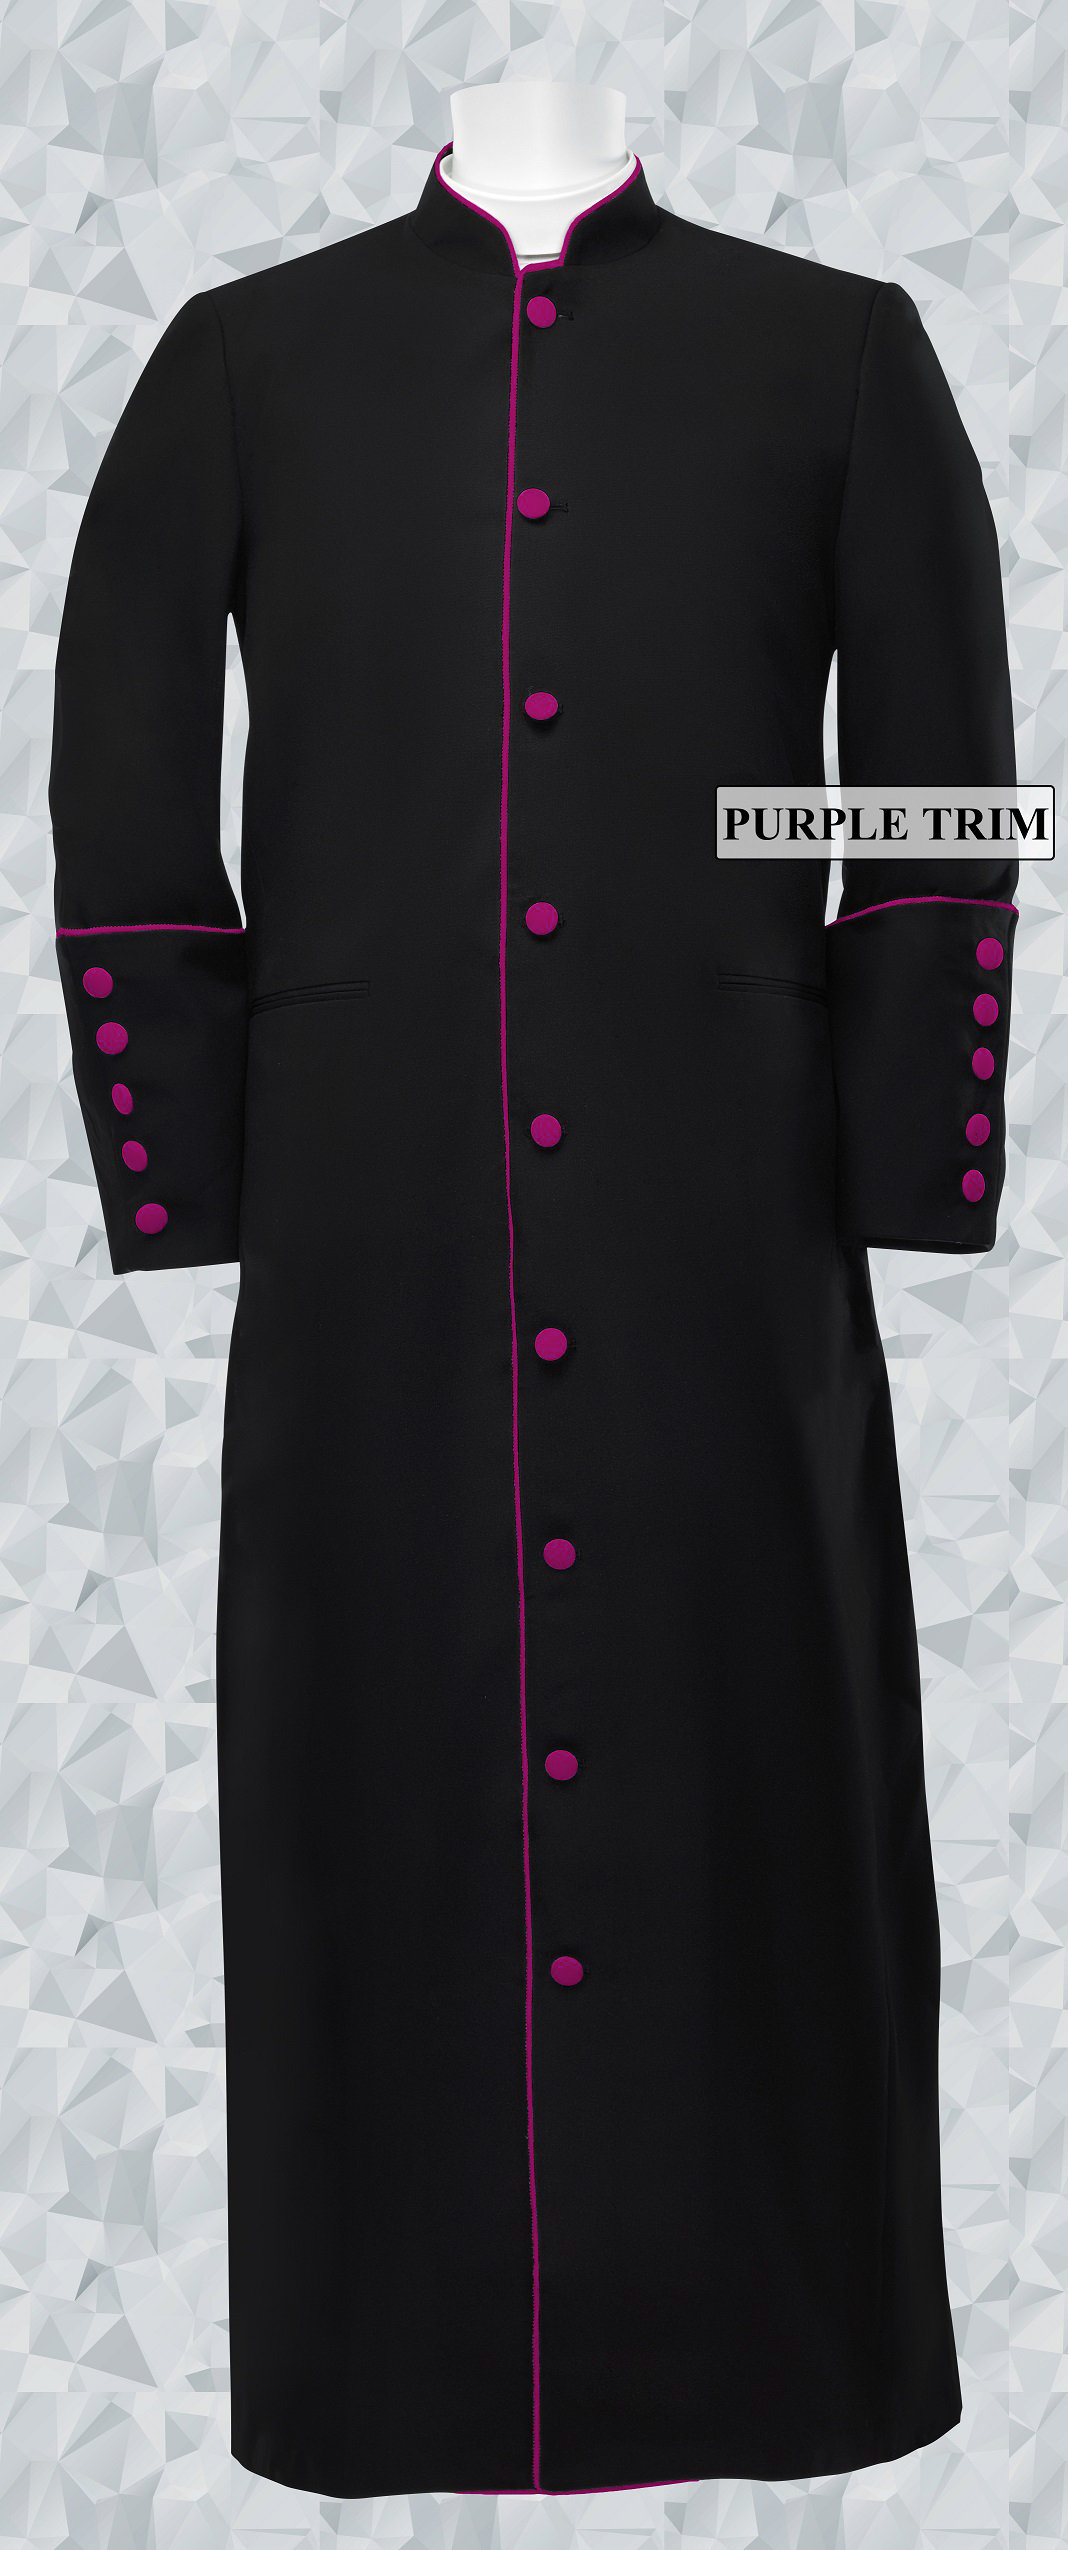 166 M. Men's Clergy/Pastor Robe Black/Medium Purple Trim